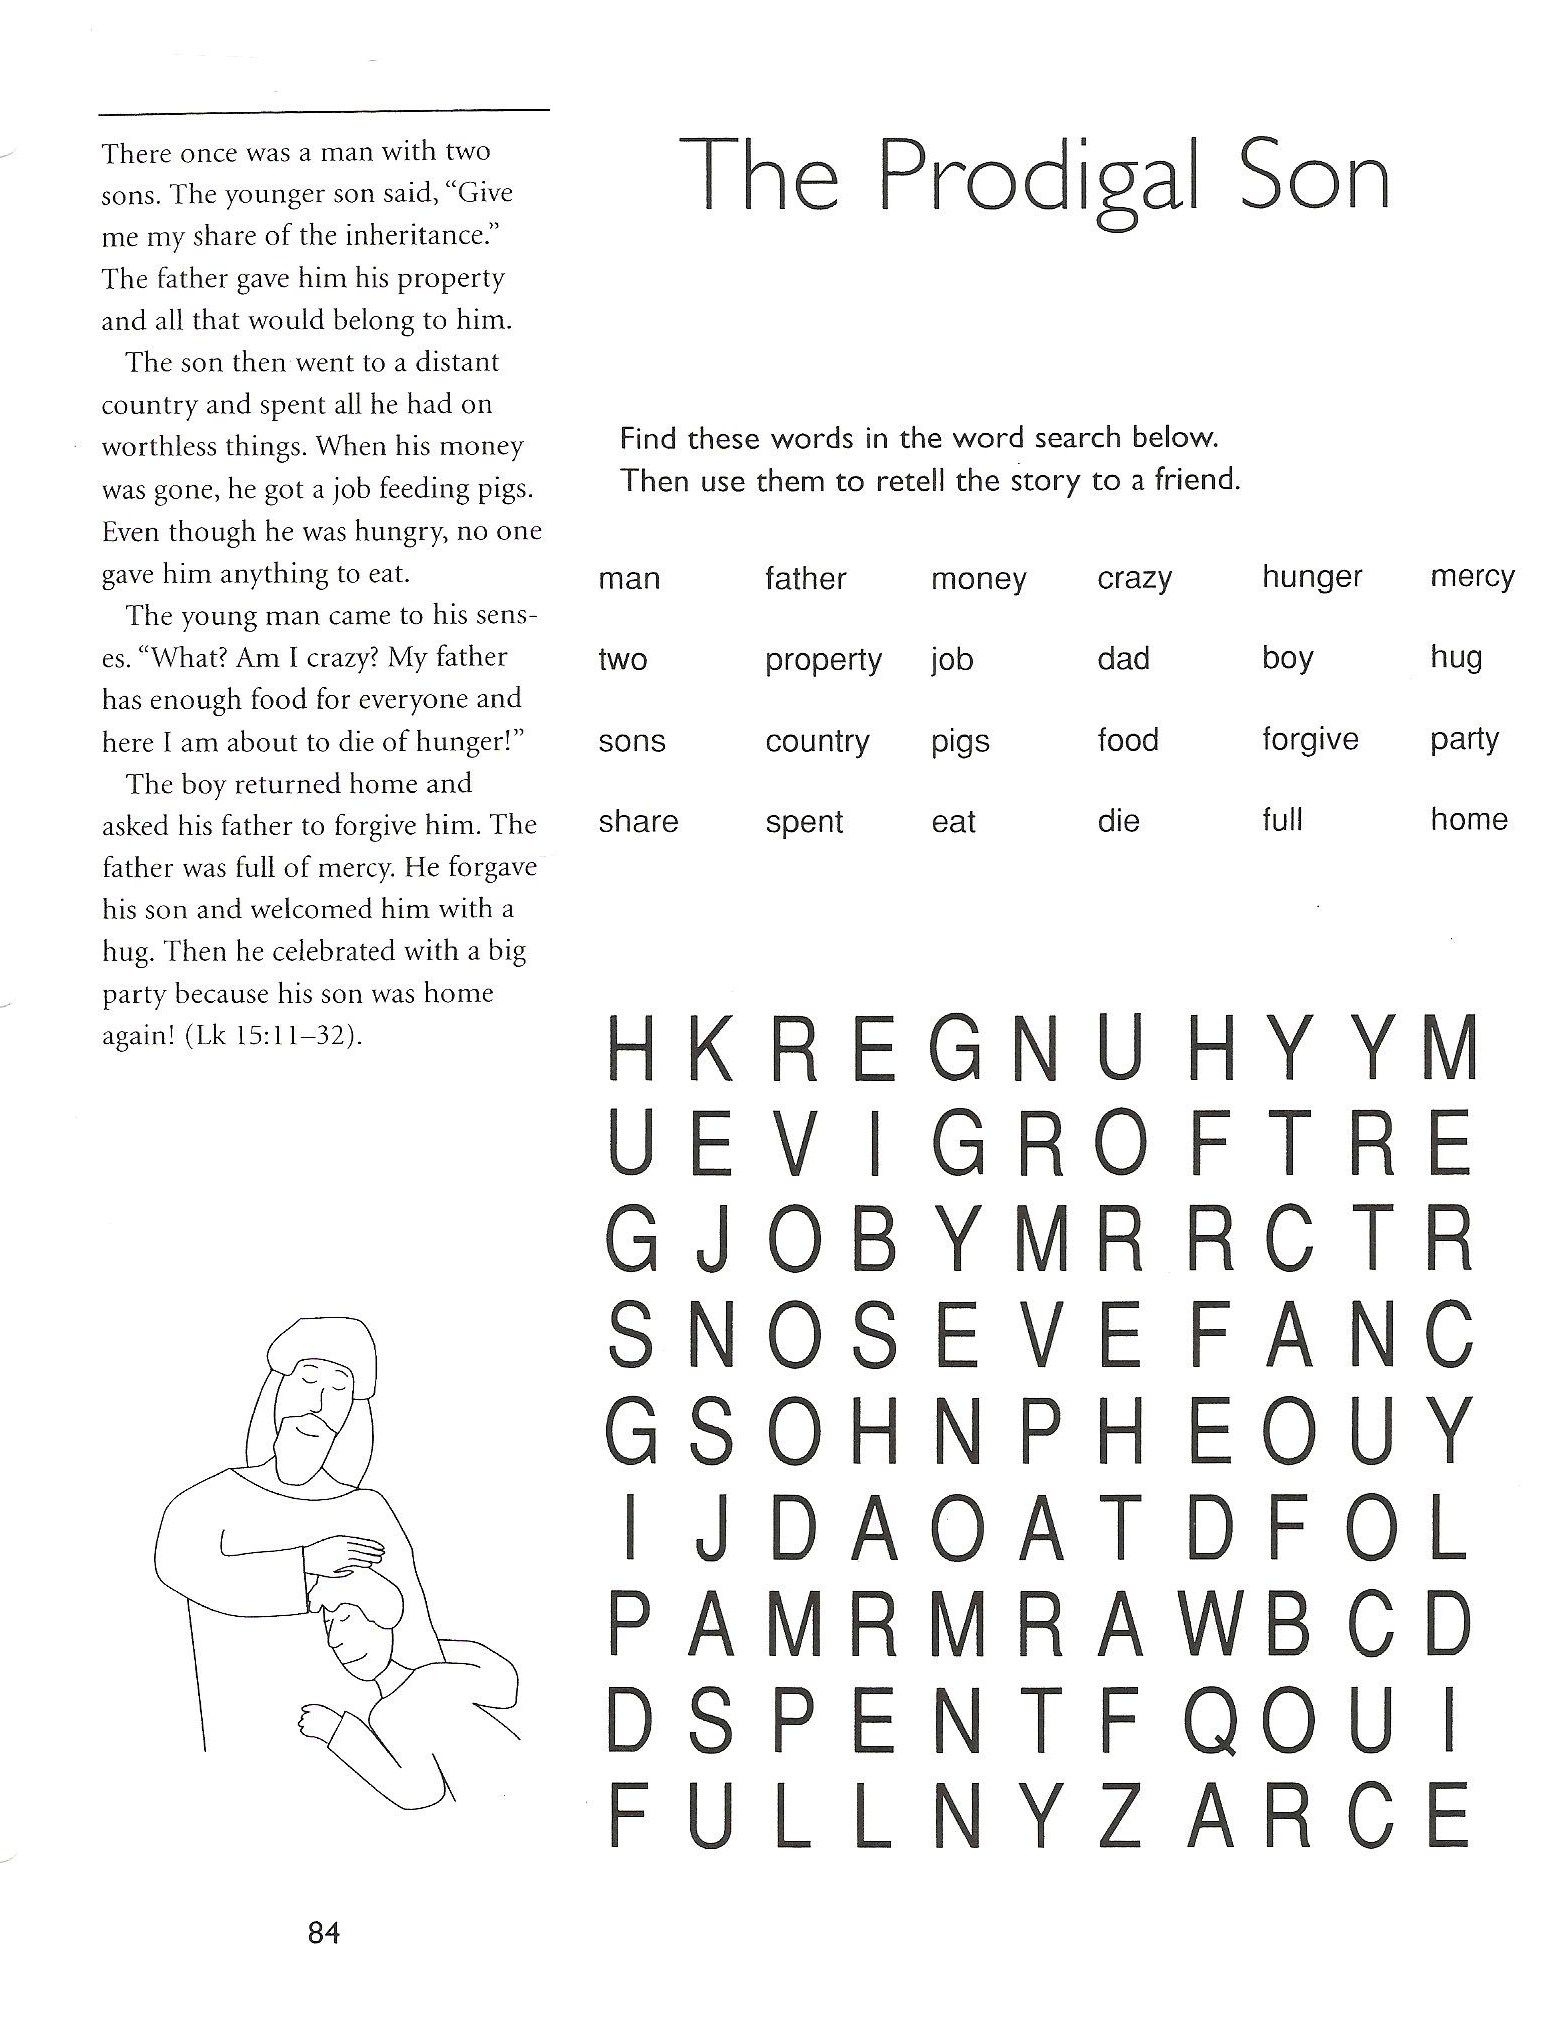 Prodigal Son Worksheets And Puzzles | 5Th Grade Catechist Resources - Printable Word Puzzles For 5Th Grade